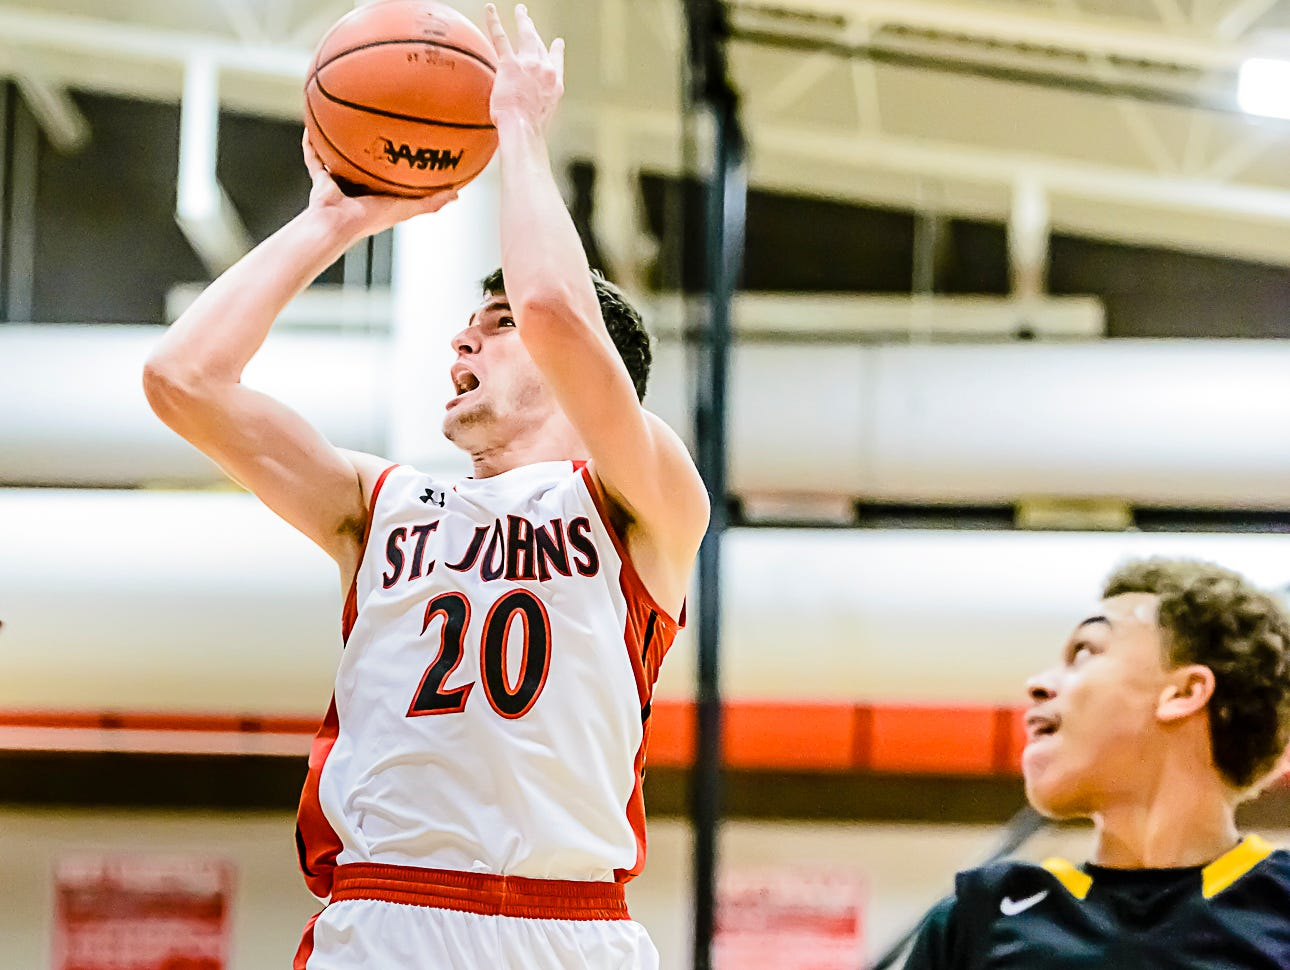 Ross Feldpausch ,20, of St. Johns pulls up to hit a short jump shot during a game last month against Waverly. Feldpausch helped the Redwings wrap up CAAC Red play unbeaten Friday with a win over Mason.